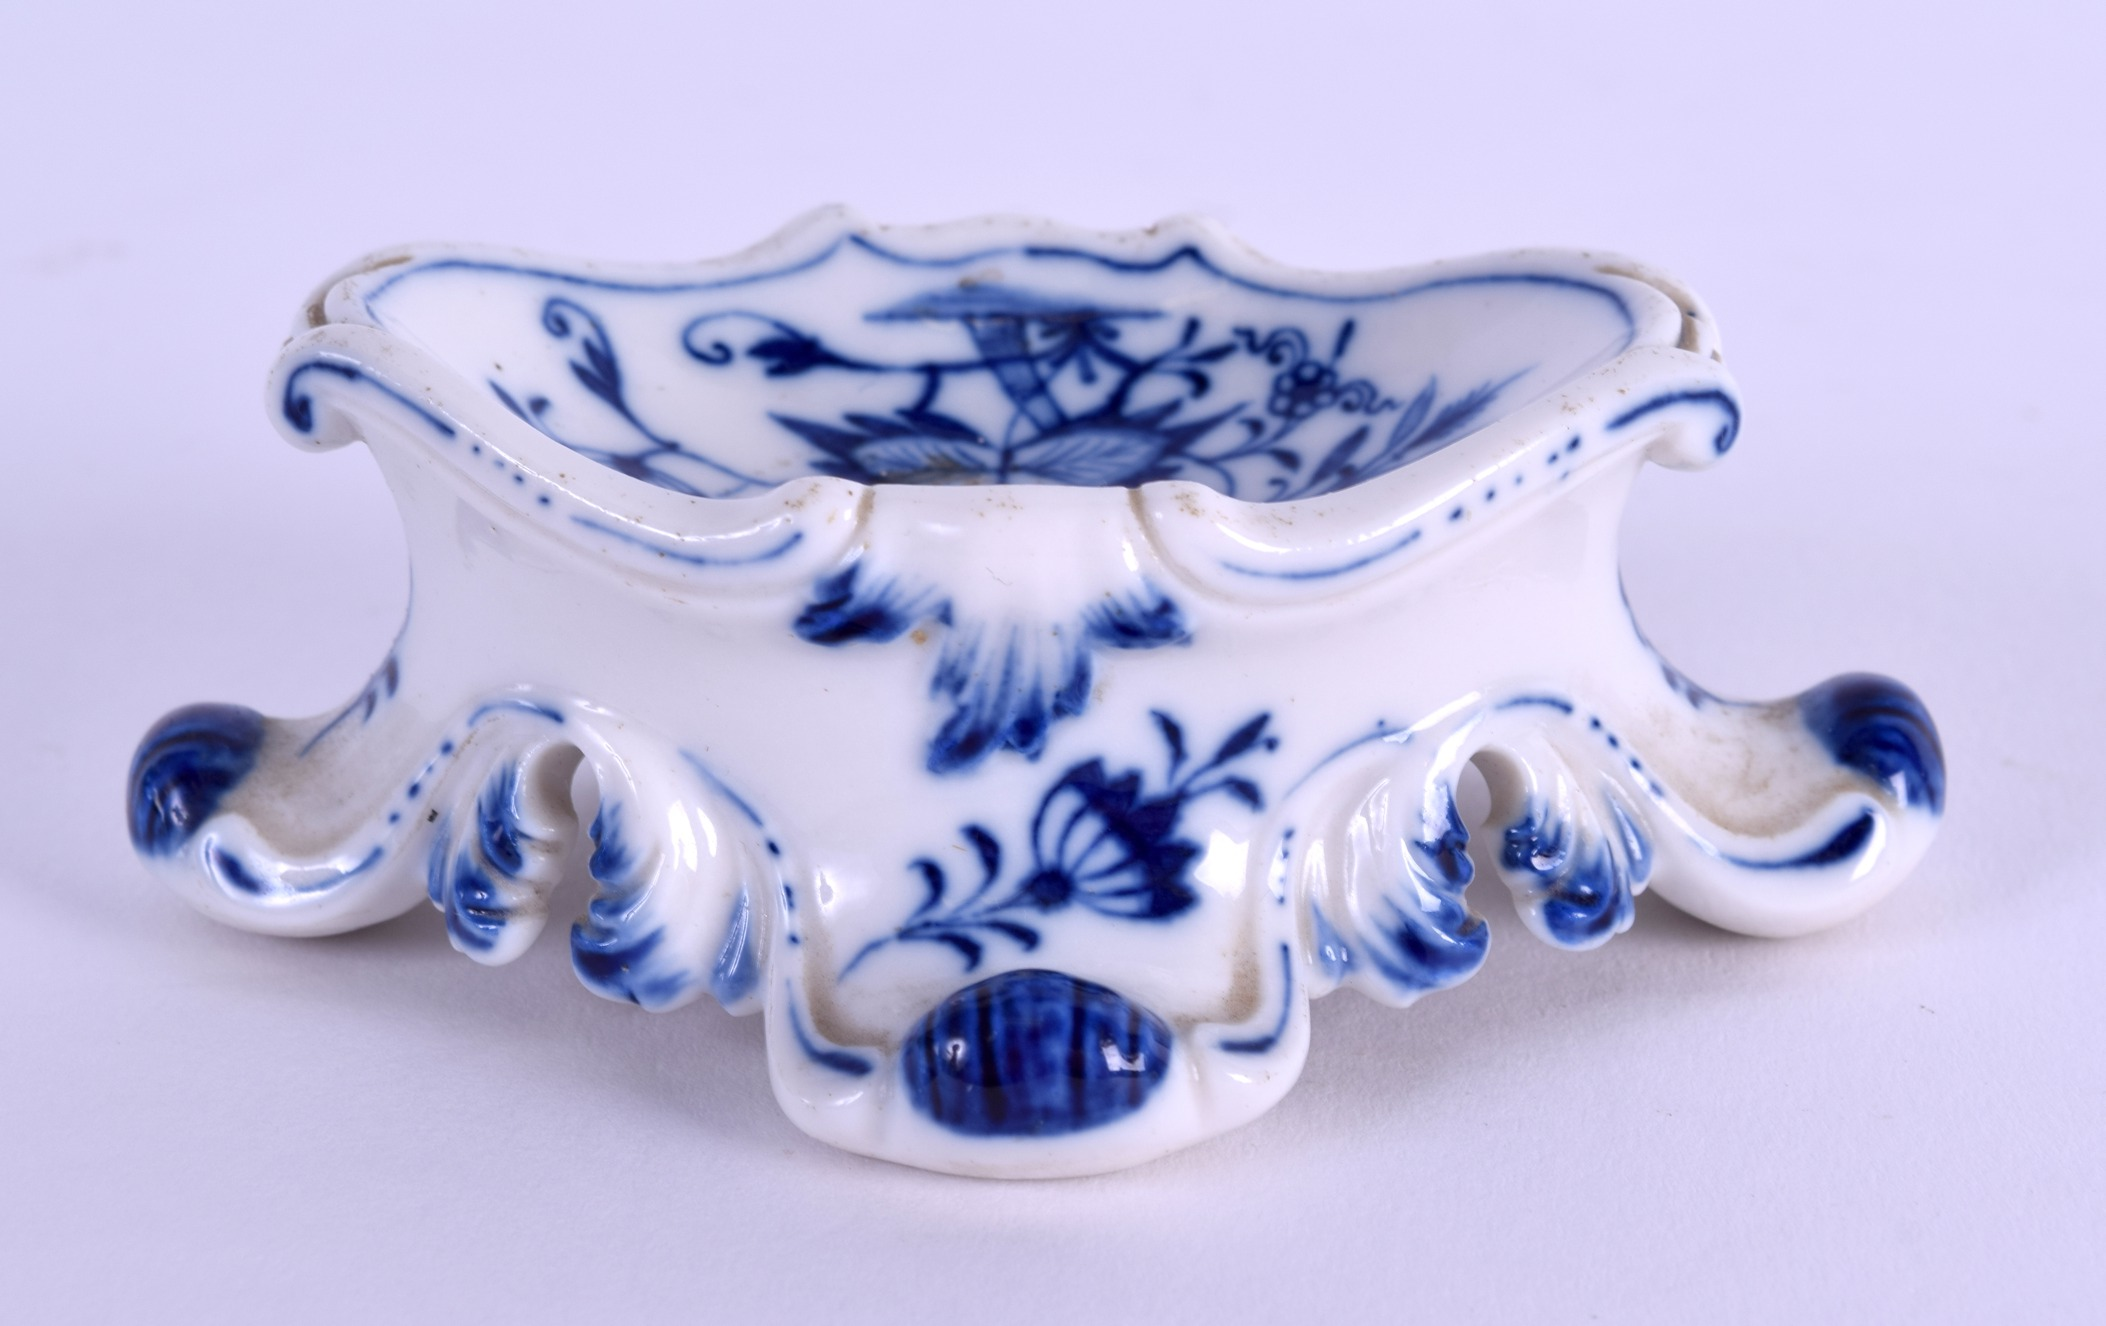 Lot 54 - A 19TH CENTURY MEISSEN BLUE AND WHITE PORCELAIN SALT painted with the onion pattern. 10 cm x 3 cm.